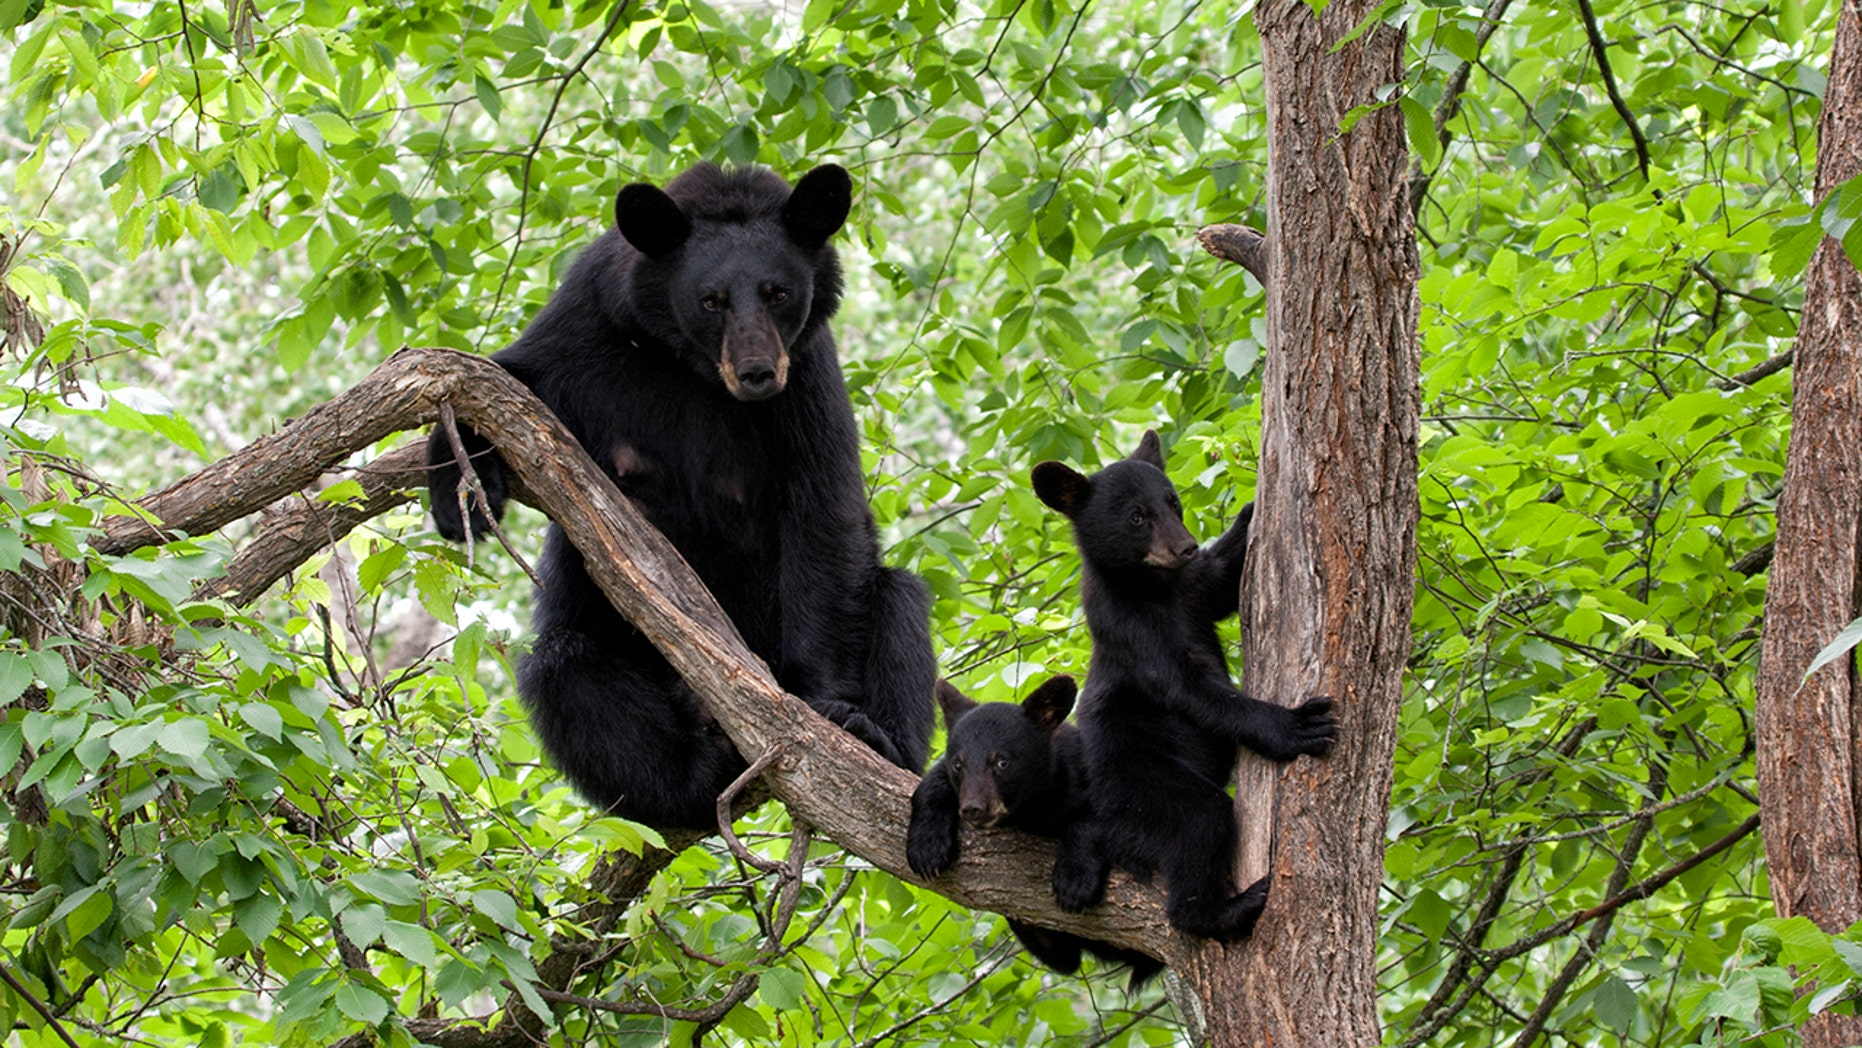 The bears likely climbed the tree because they were frightened, a wildlife official said.